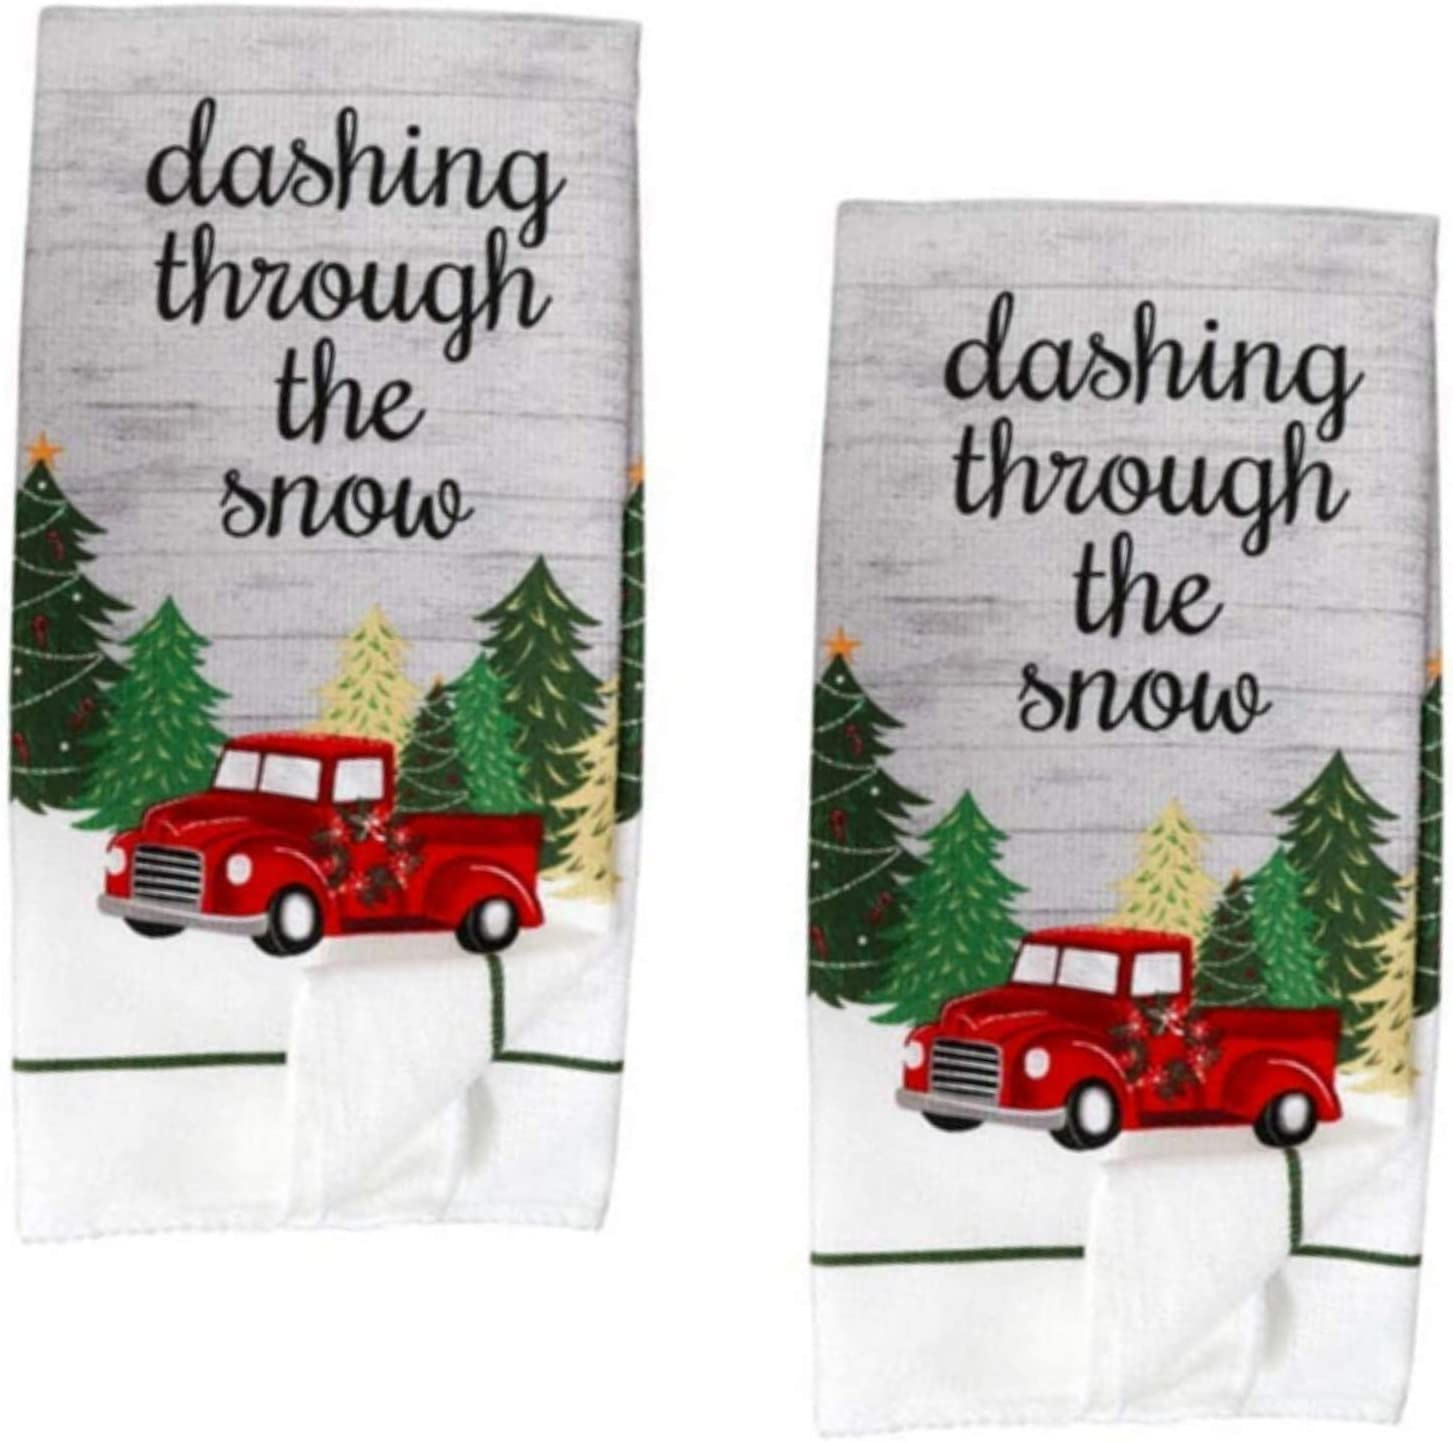 Kitchen Towels - Holiday Decorations - Christmas Tree Linen Set - Red Truck Dashing Through The Snow - Dish Towels - Holiday Home Decor - Bathroom Hand Towels